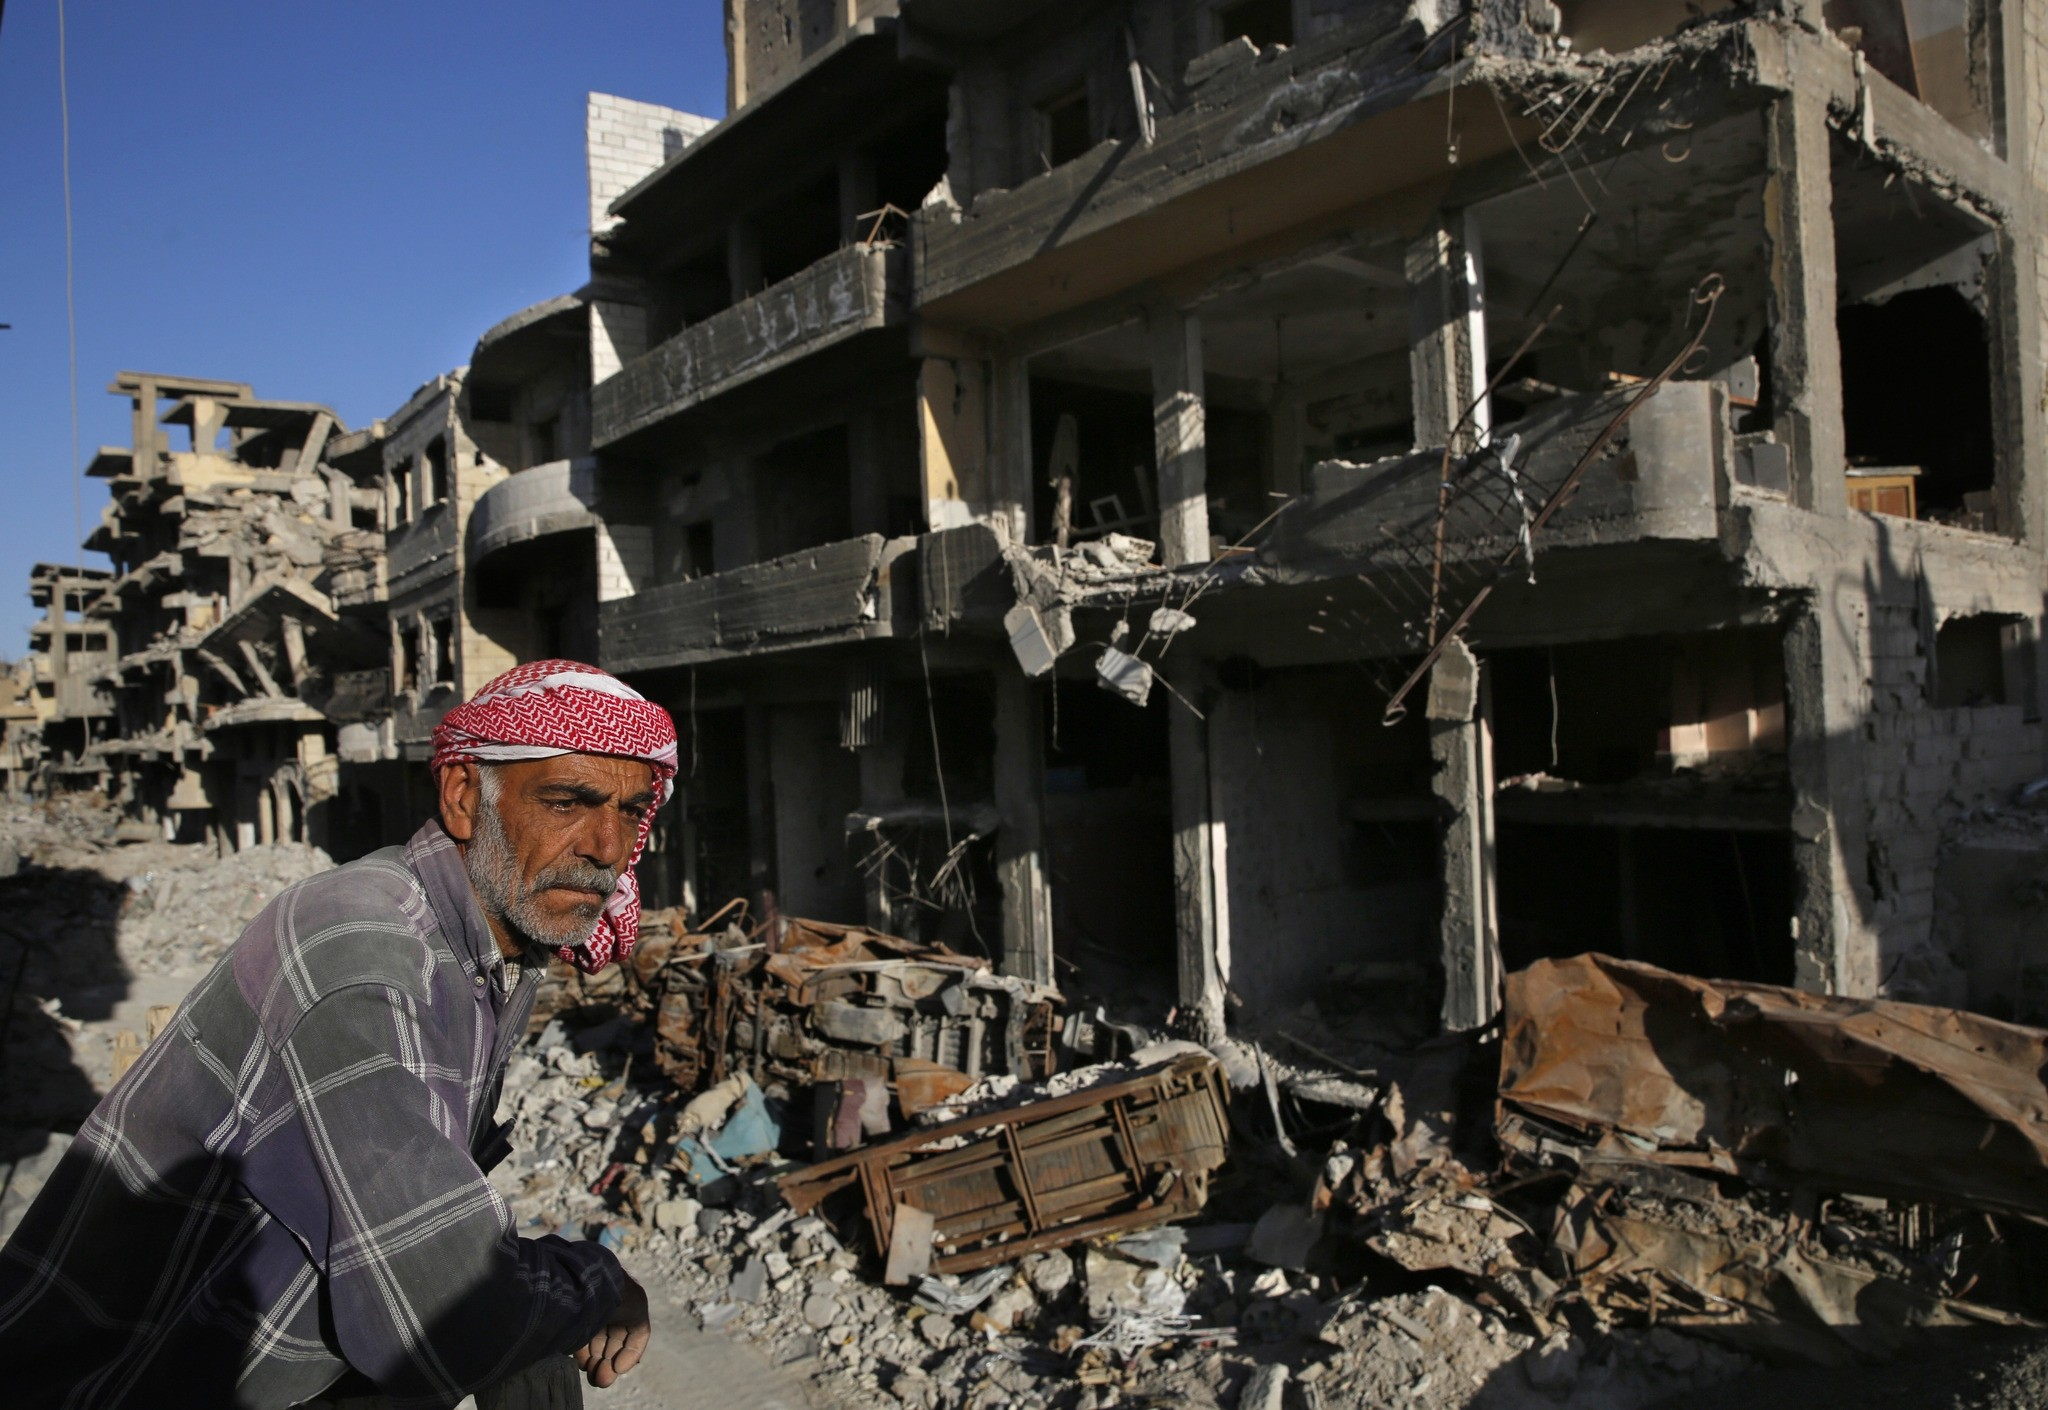 In this Thursday, April 5, 2018 photo, a Syrian man stands between buildings that were damaged last summer during fighting in Raqqa, Syria. (AP Photo)